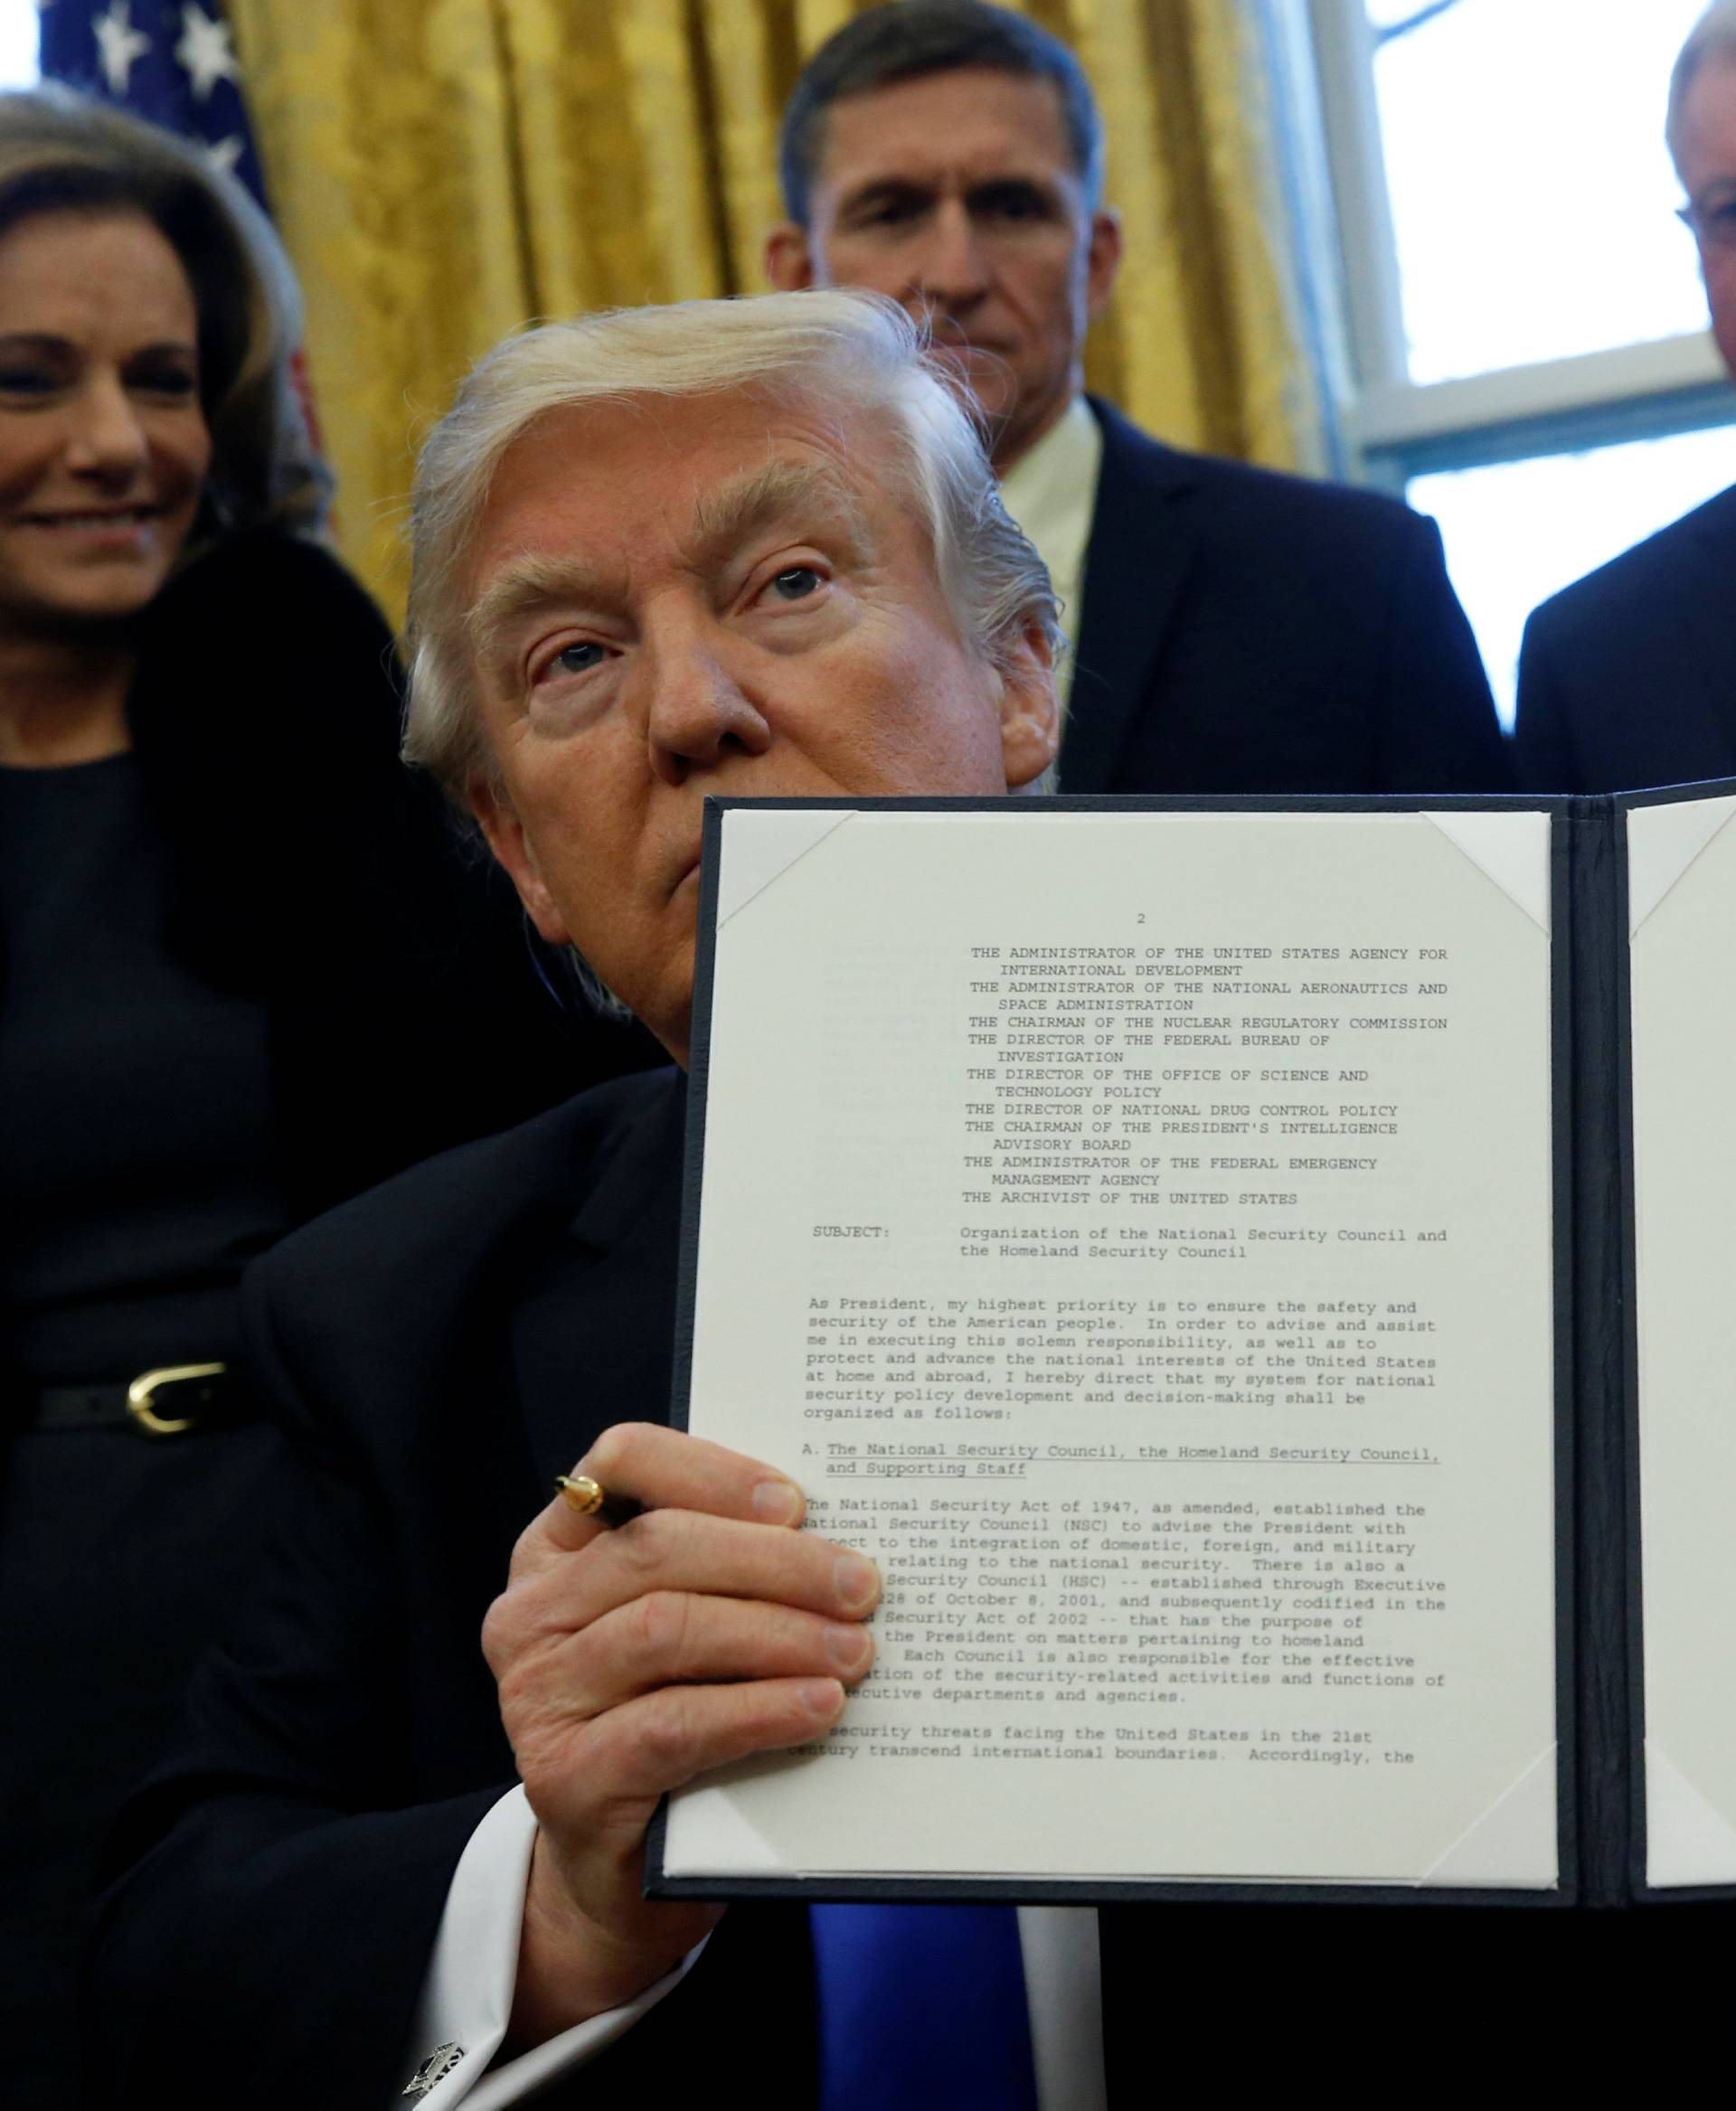 Trump holds an executive order dealing with the structure of the National Security Council after signing it in the Oval Office at the White House in Washington